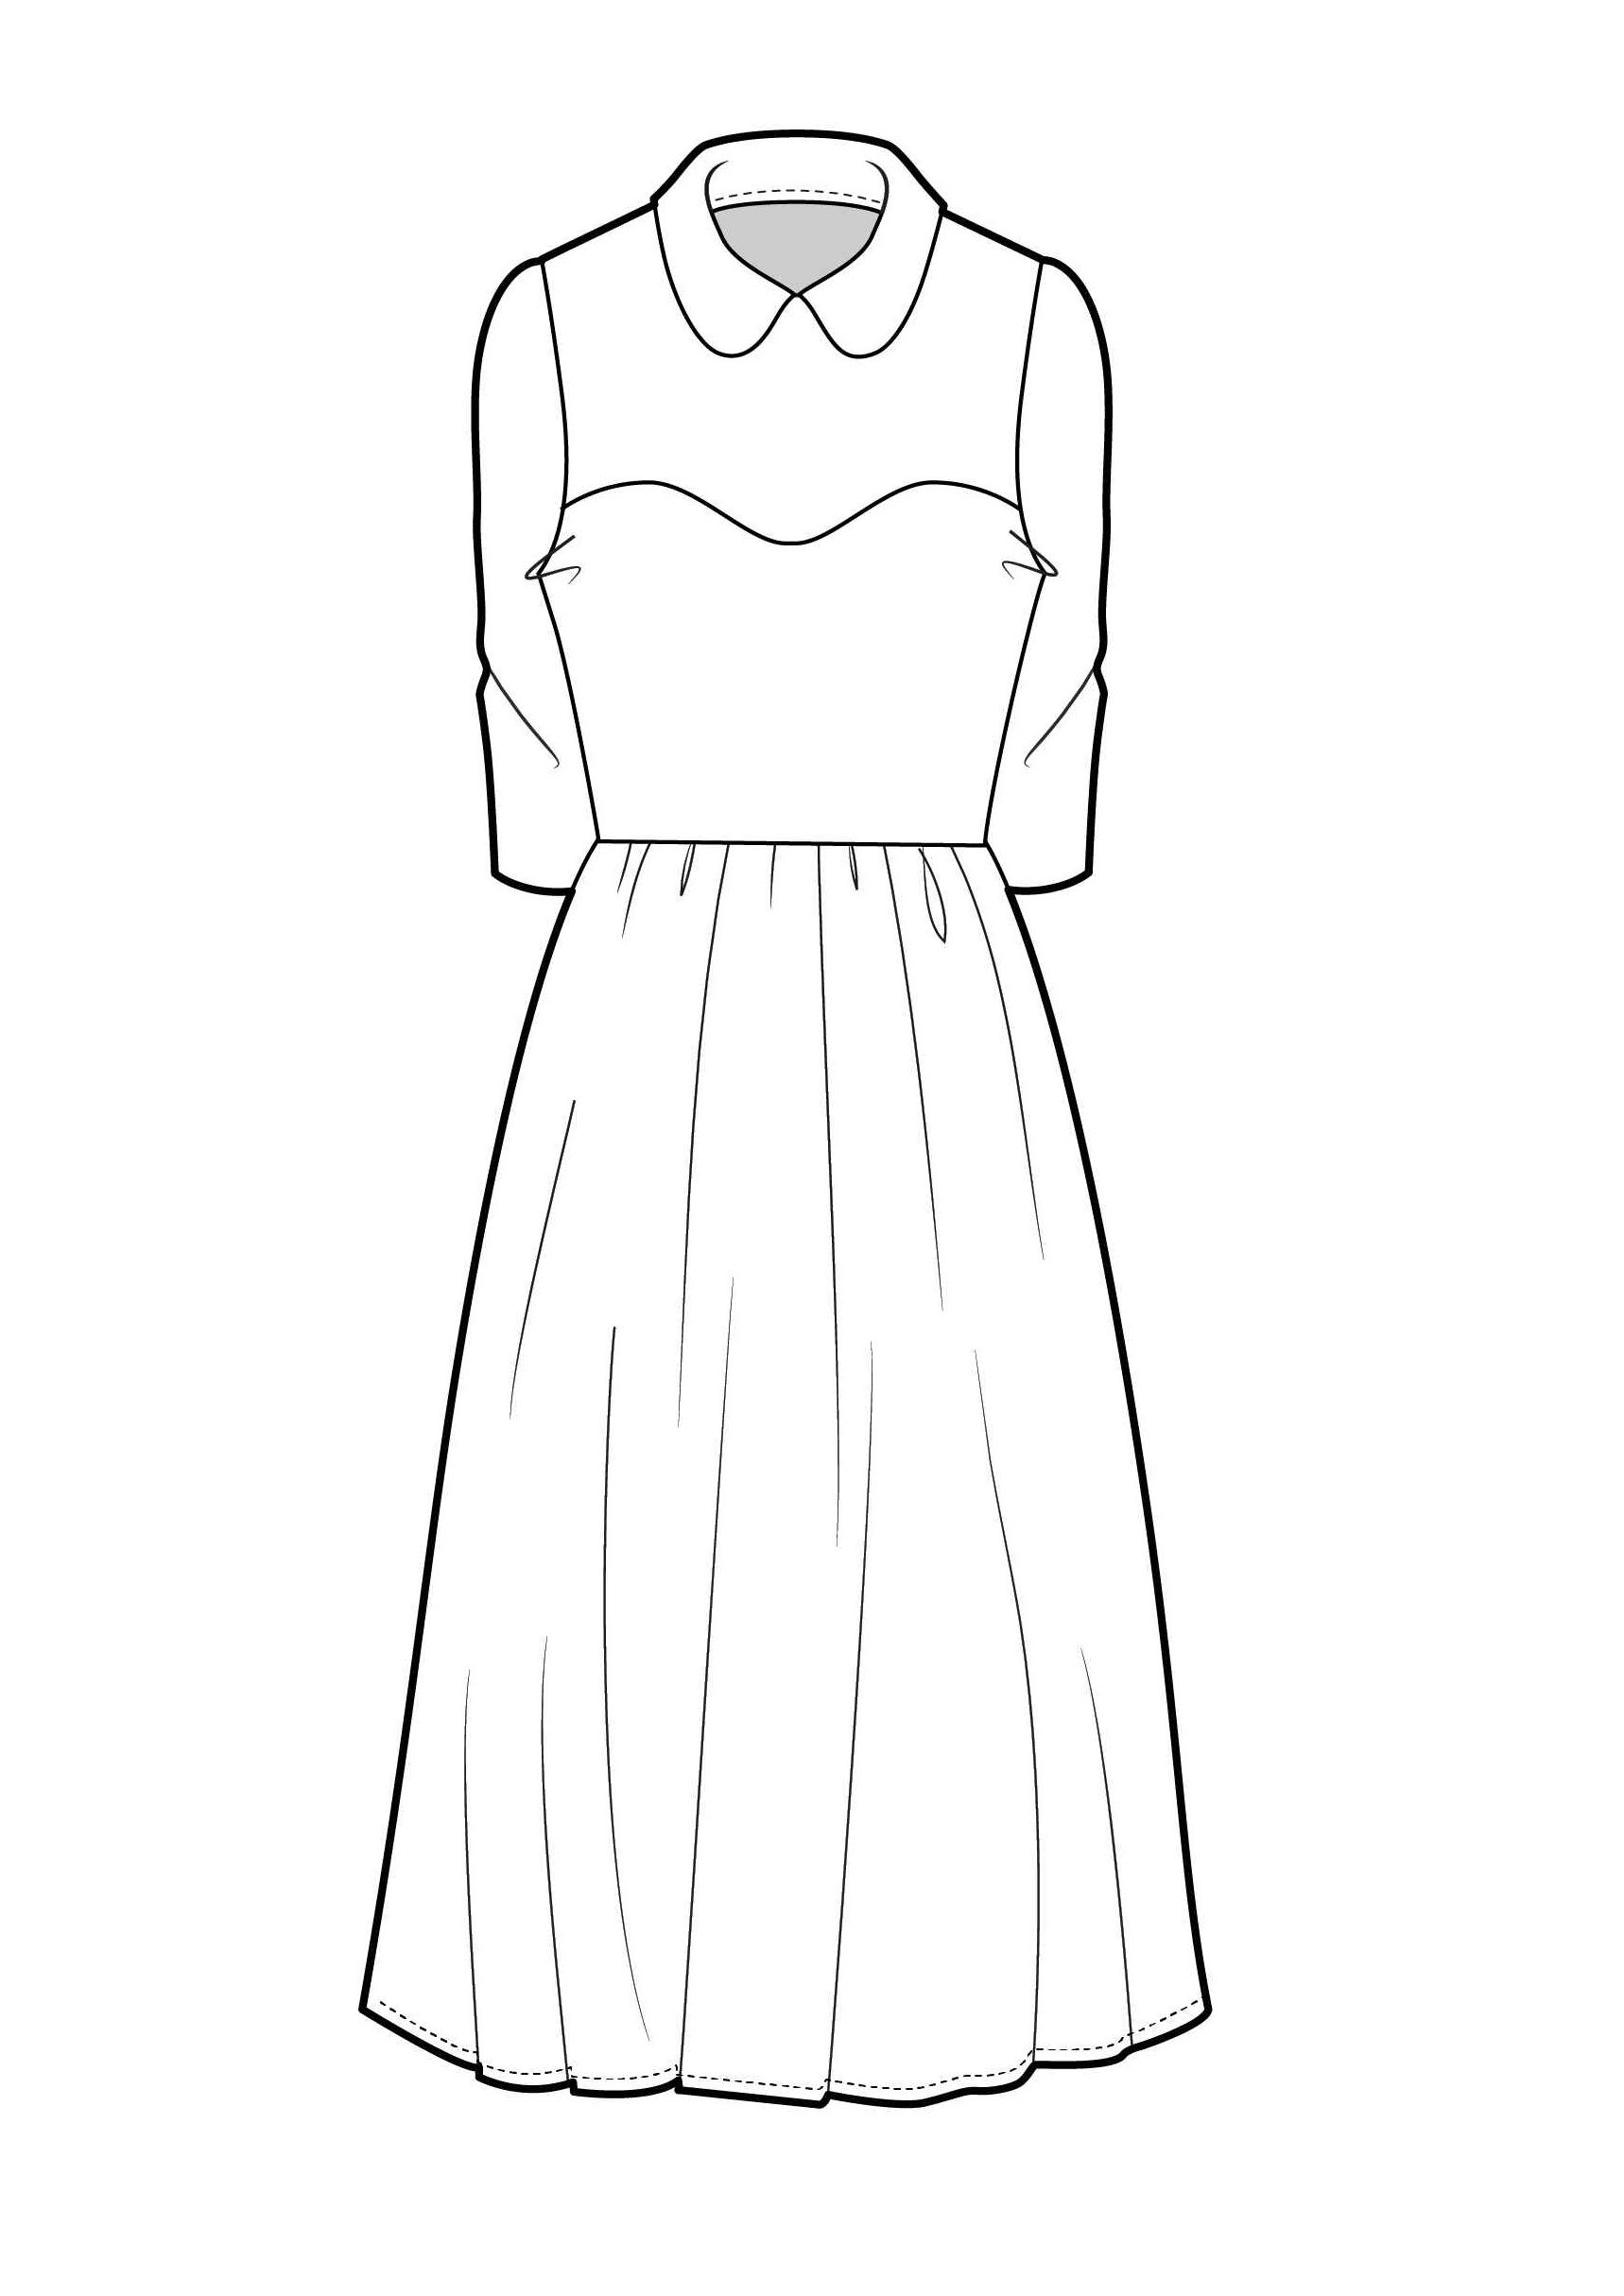 clipart black and white Drawing outfits clothing. Collared dress fashion flat